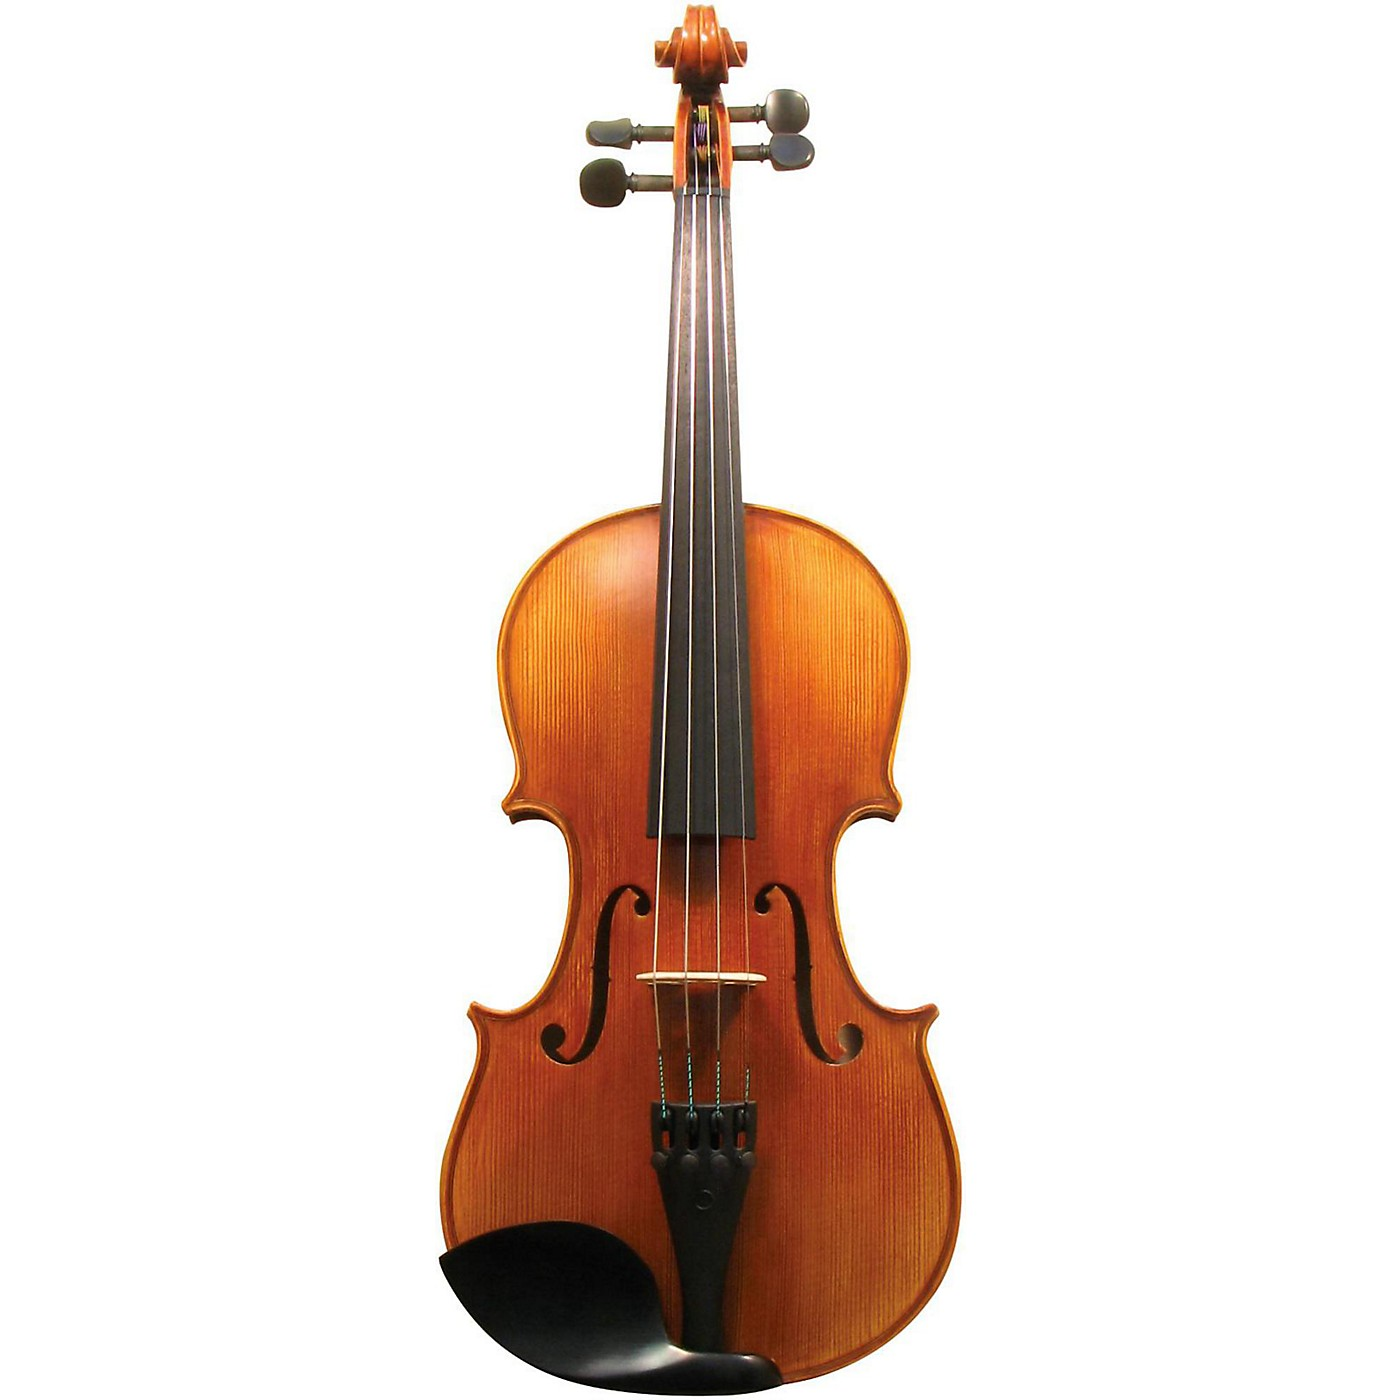 Maple Leaf Strings MLS 130 Apprentice Collection Violin Outfit thumbnail